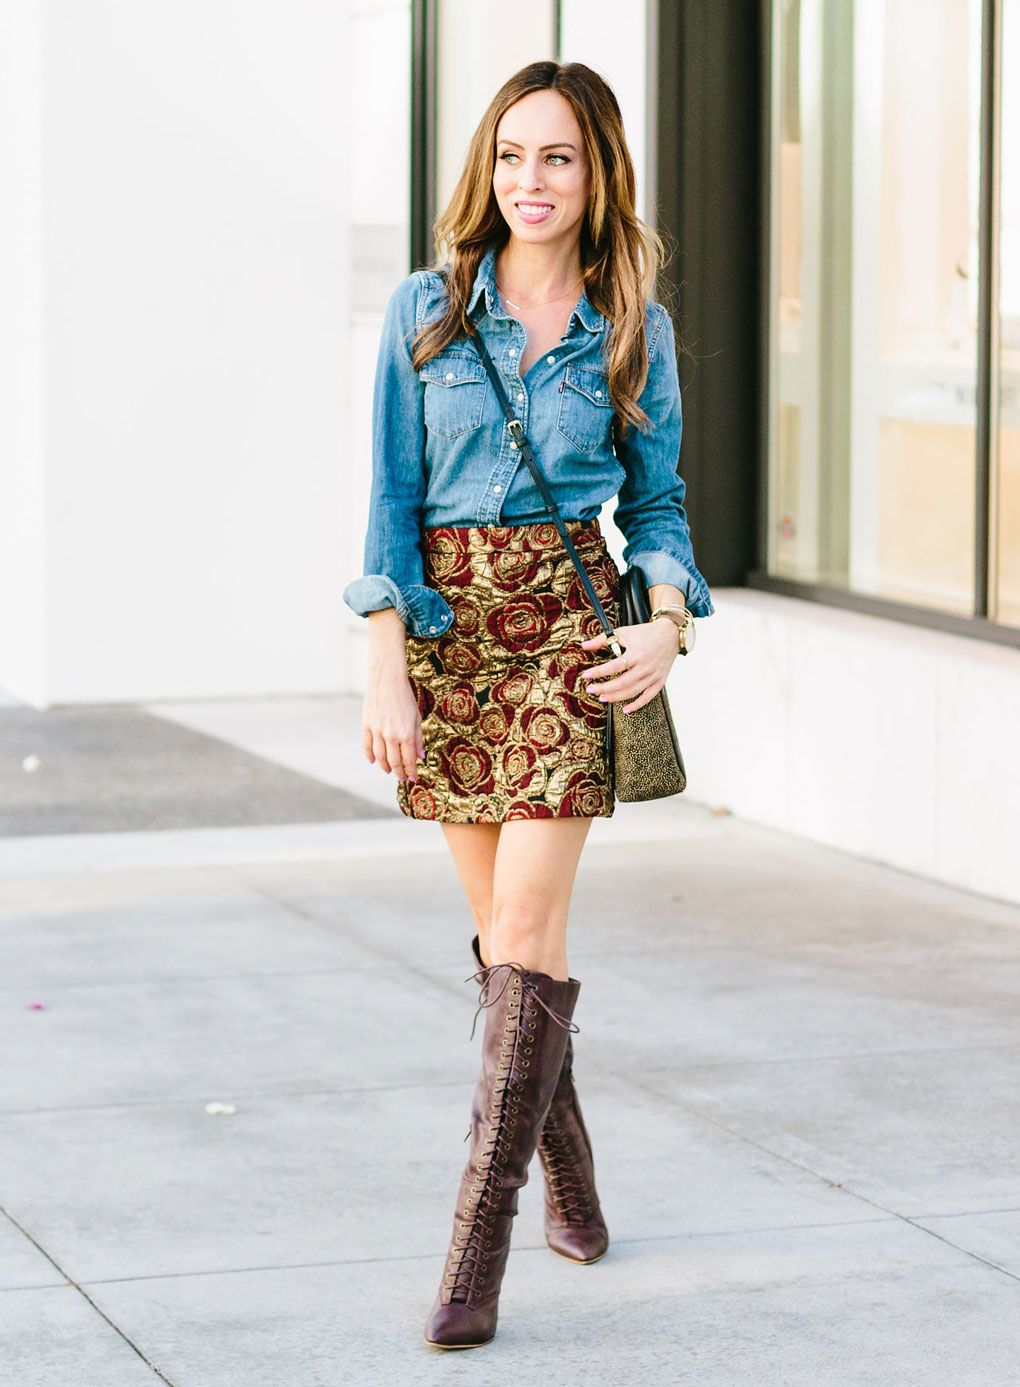 Sydne Style - Los Angeles fashion blogger and People Stylewatch contributor Sydne  Summer shows how to style a brocade mini skirt with lace up boots. eeee1a34a